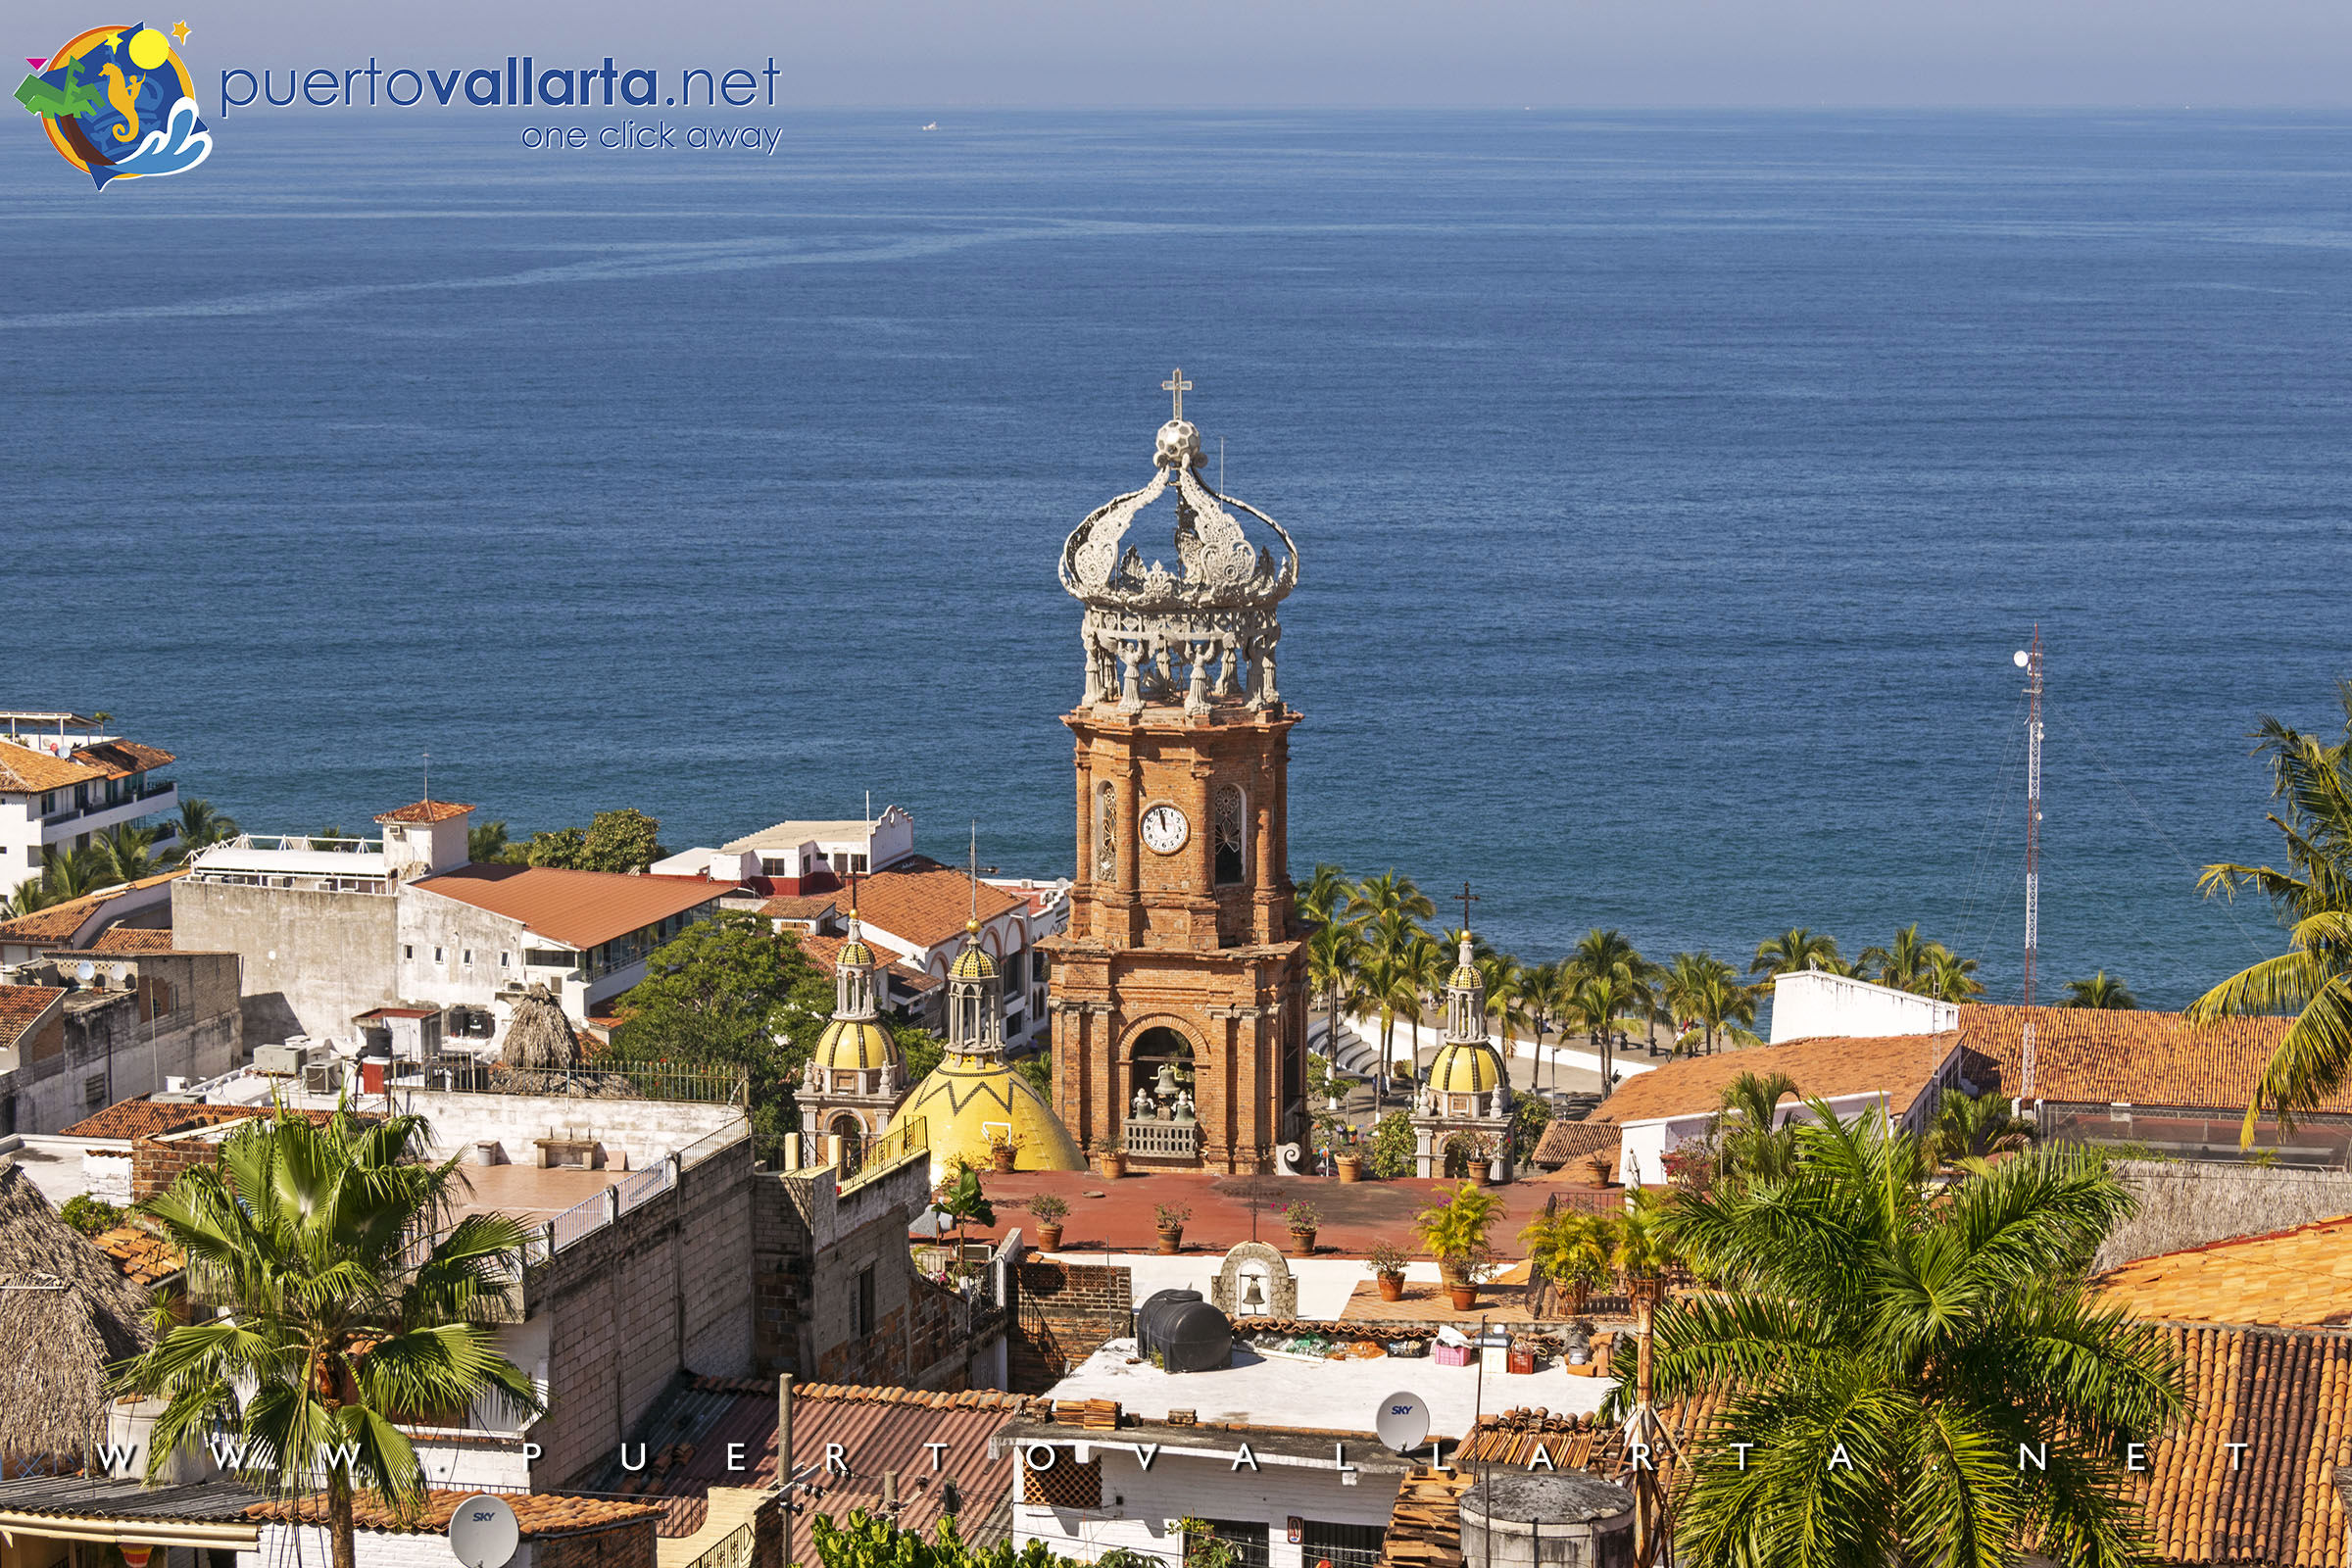 Parish of Our Lady of Guadalupe, church in Downtown Puerto Vallarta